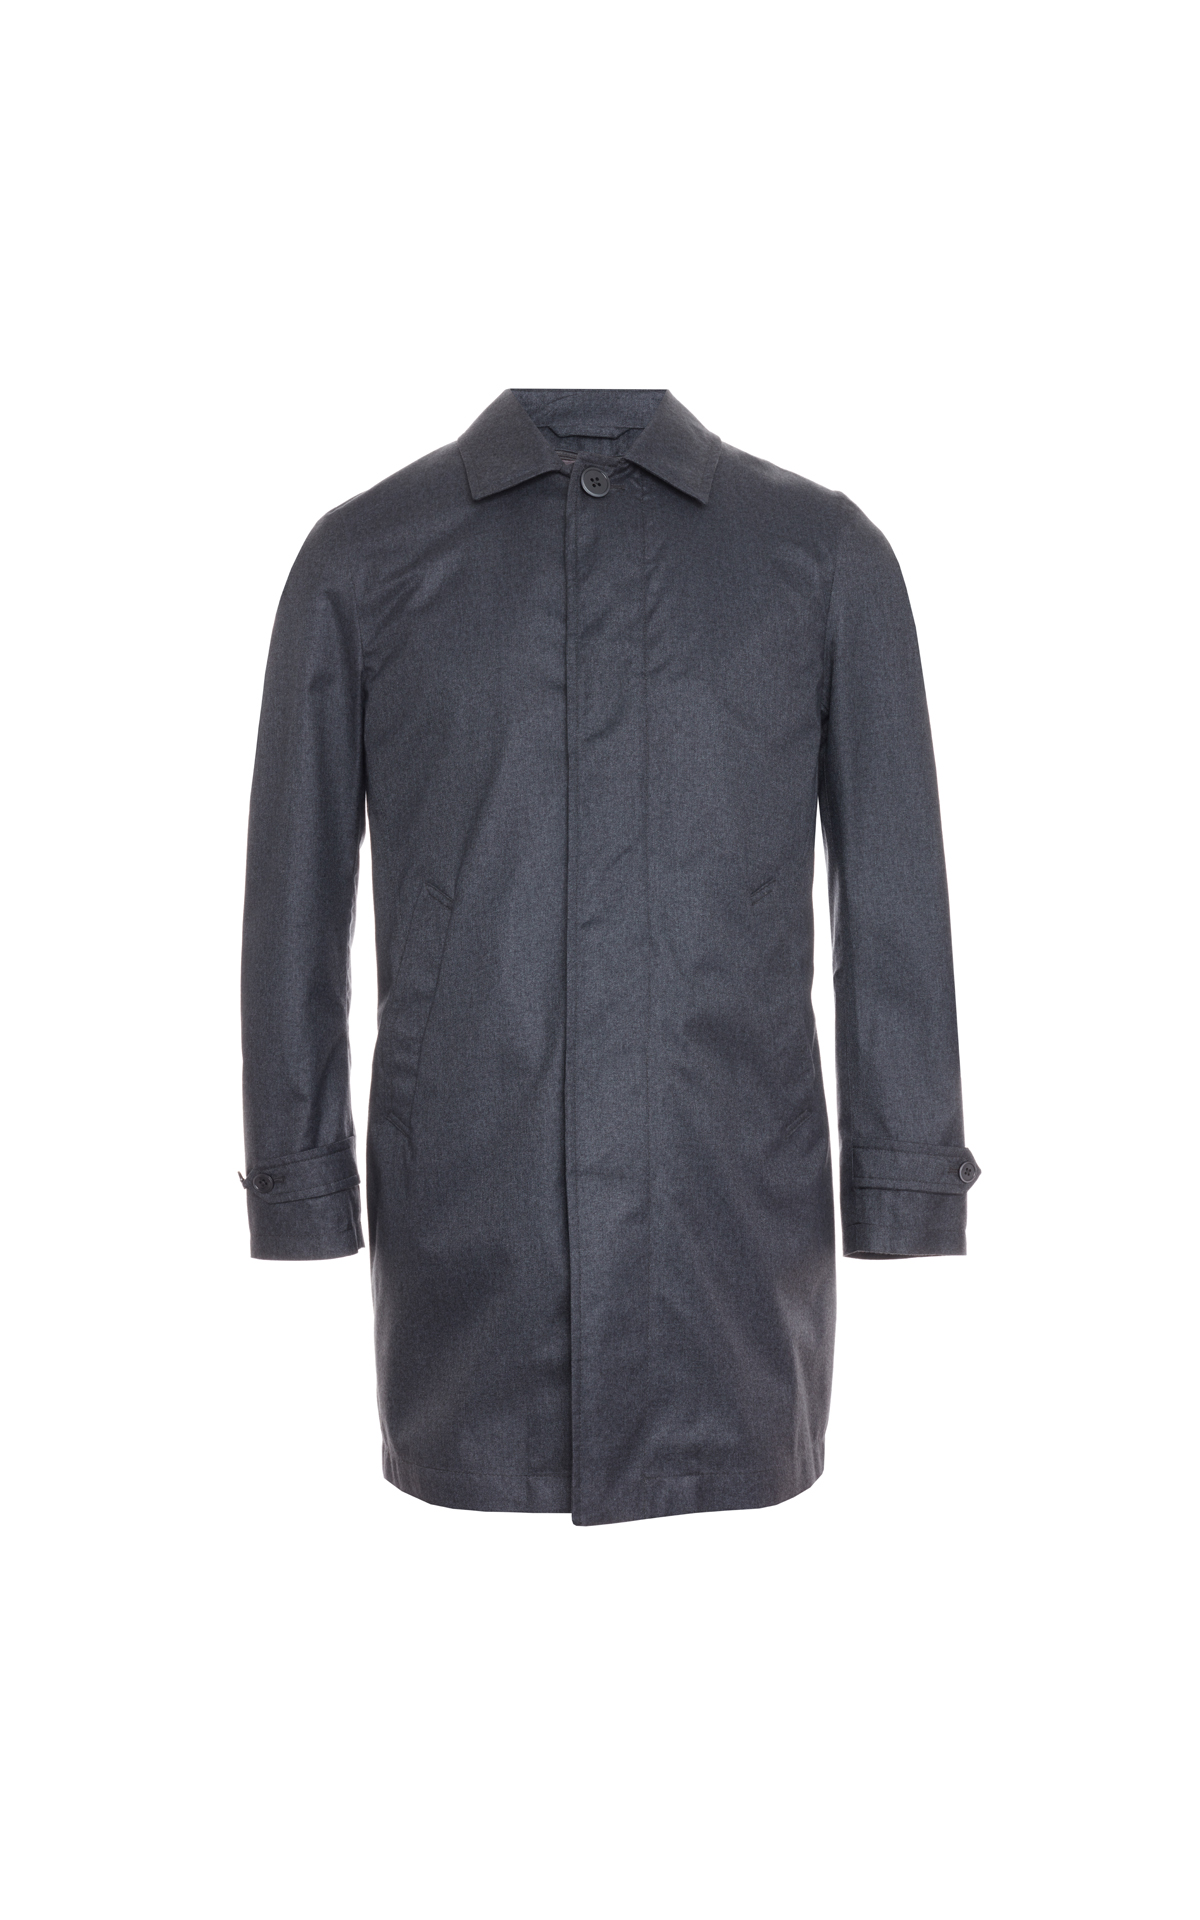 Savoy Taylors Guild Charcoal quilted raincoat from Bicester Village